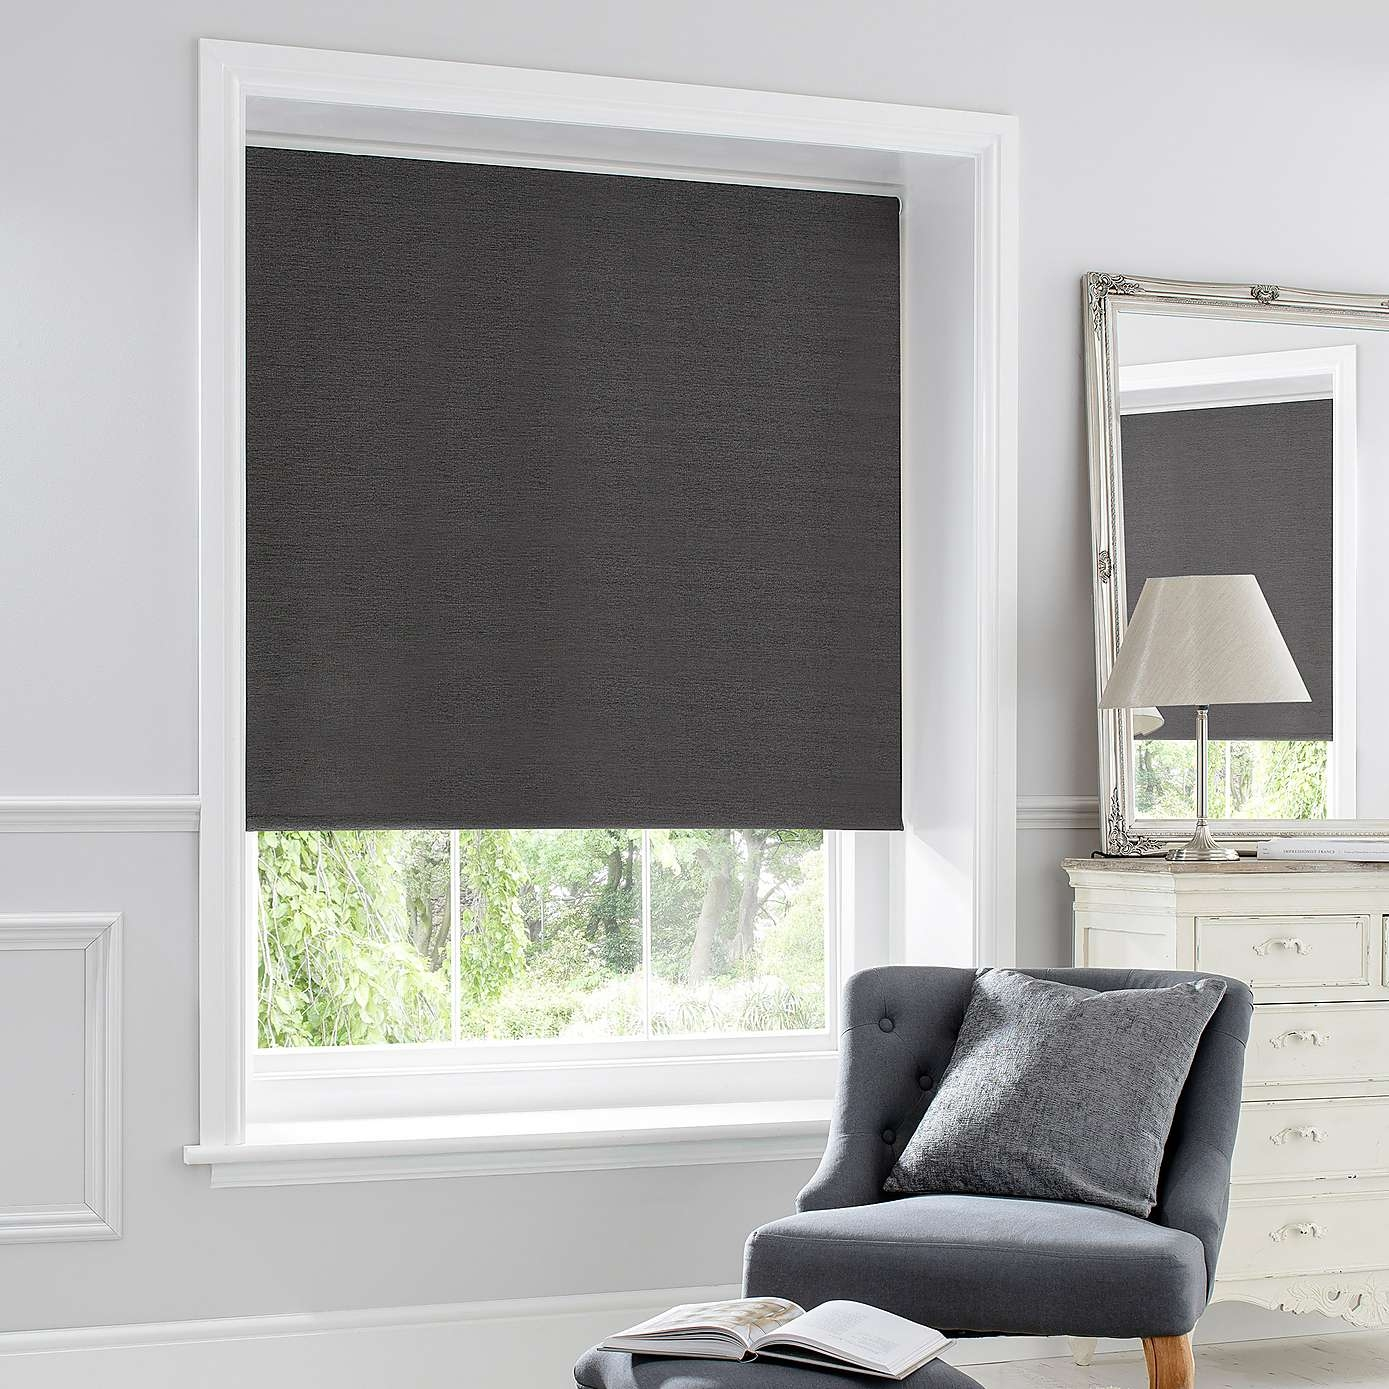 Thermal Luxe Blackout Cinder Roller Blind Eyebrows Grey And Pertaining To Blackout Thermal Blinds (Image 14 of 15)